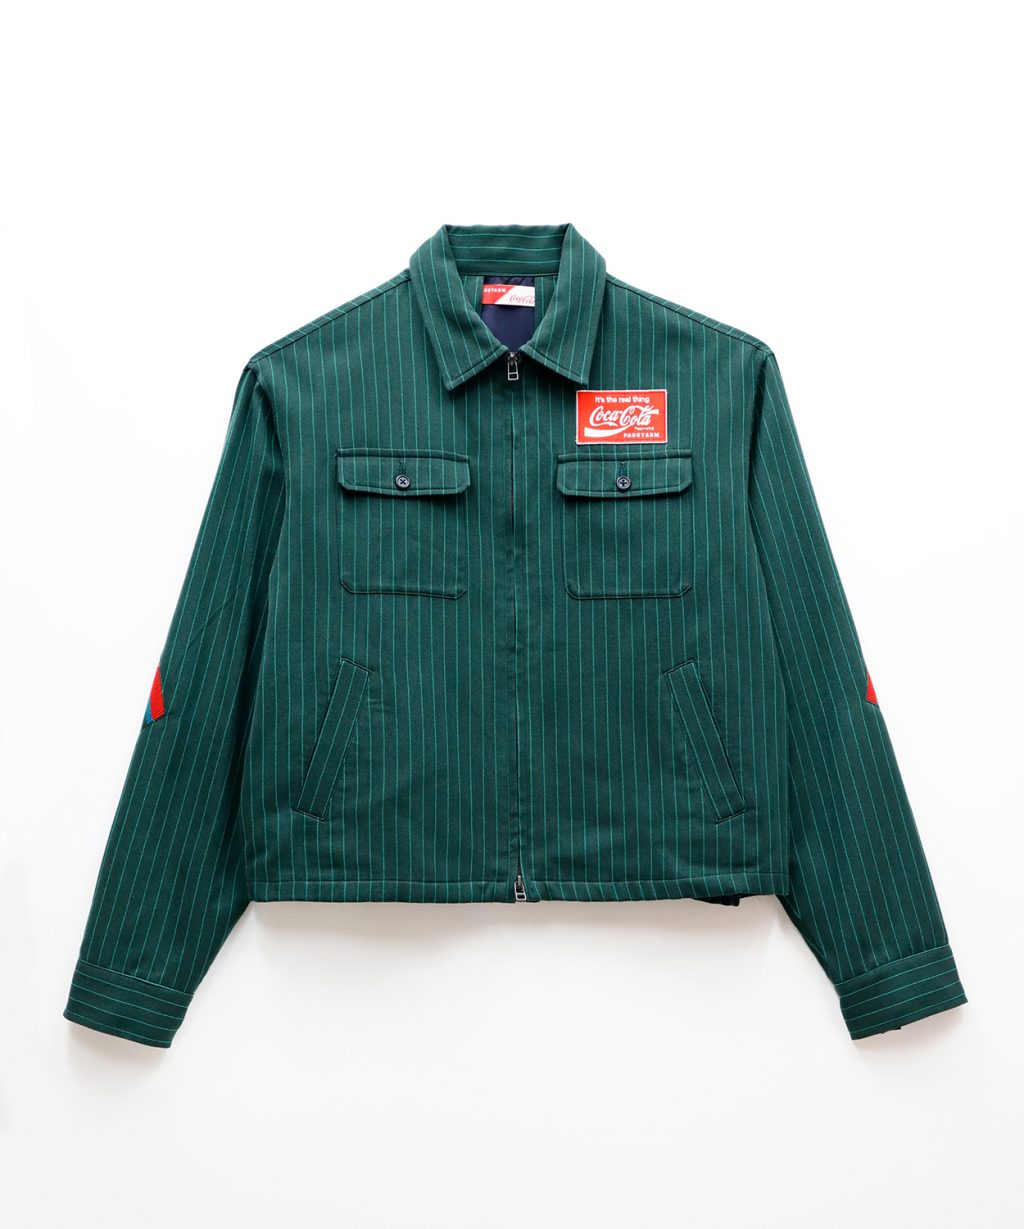 COCA-COLA-WORK-JACKET-green1-1024x1229.jpg